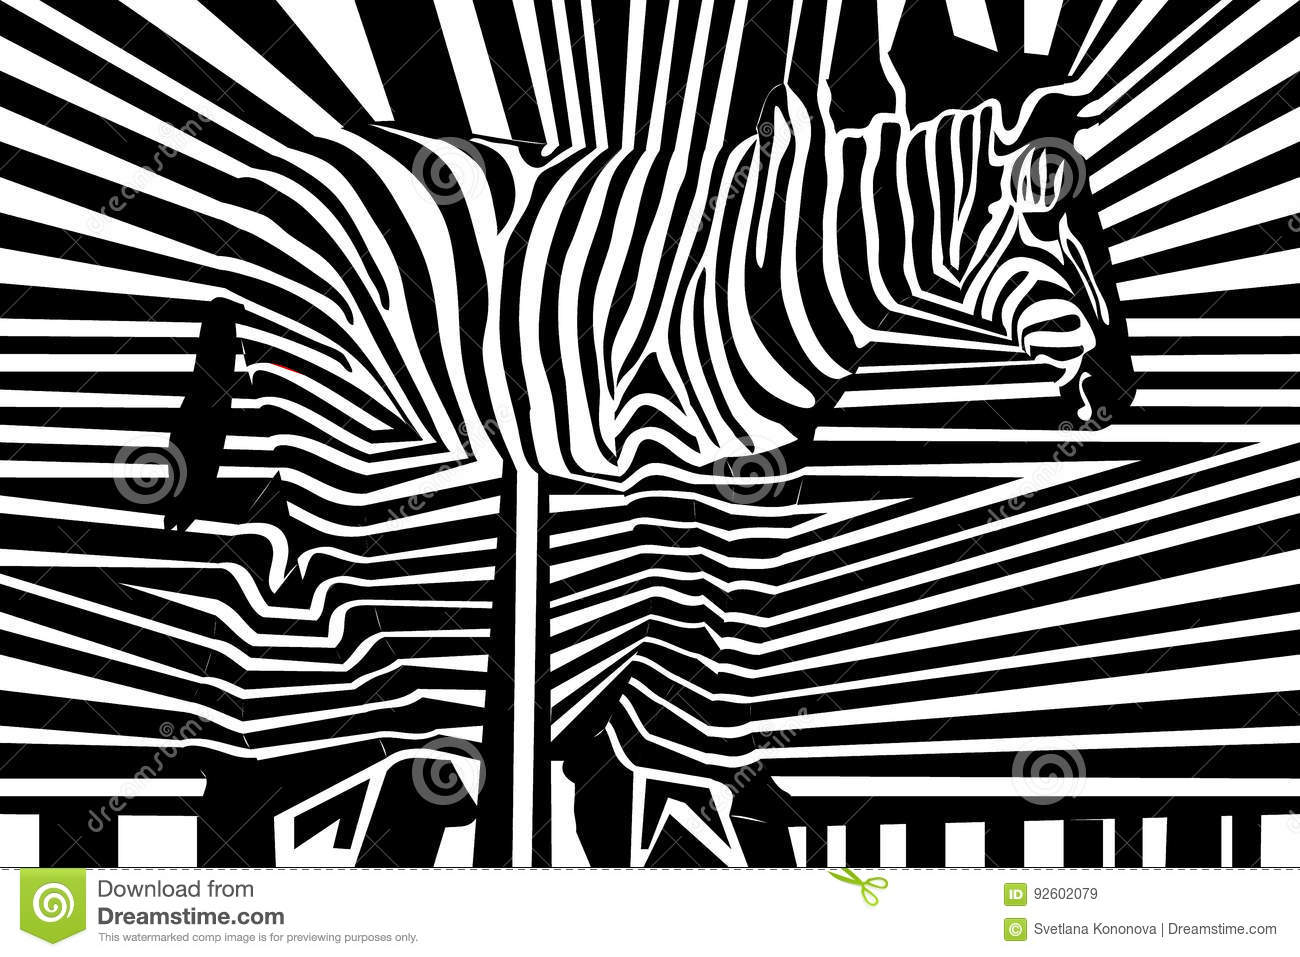 Seamless black and white stripped pattern with zebra